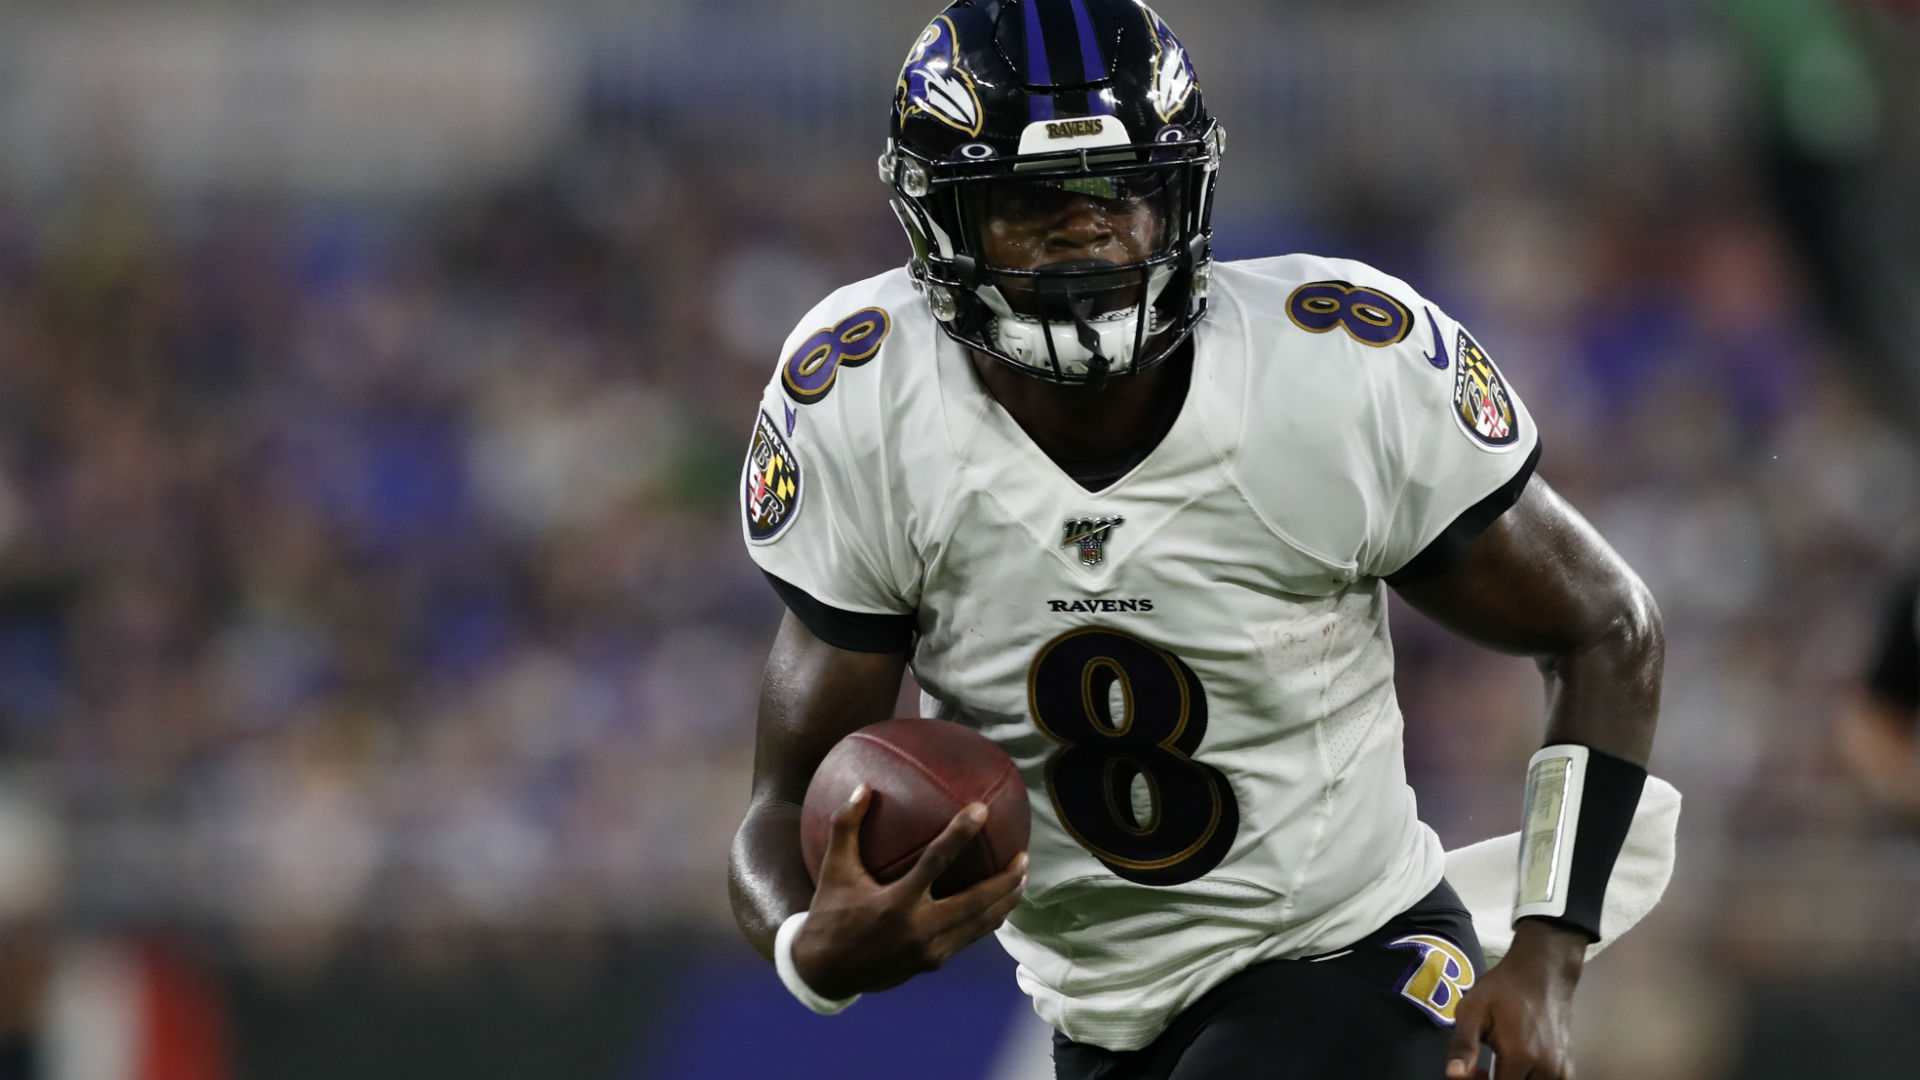 Ravens' Lamar Jackson excited about throwing more touchdowns: 'I hate running'